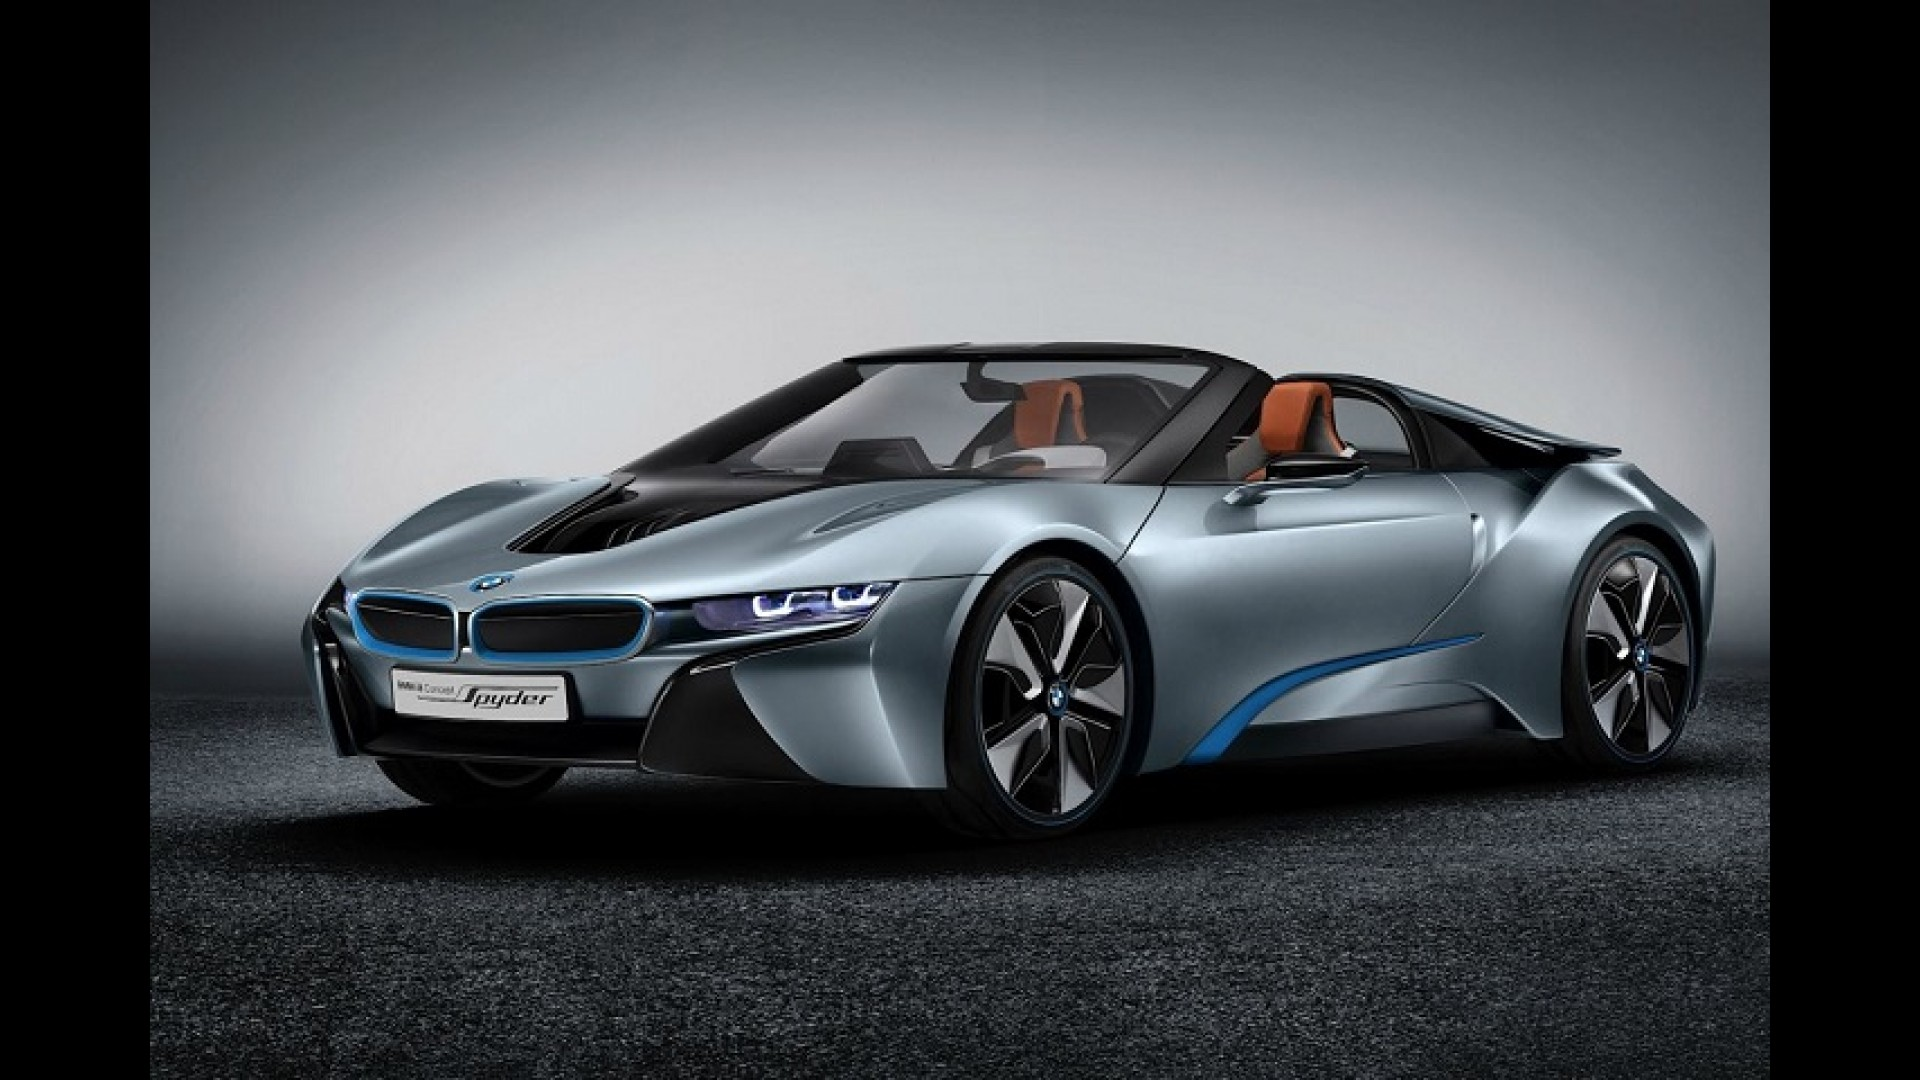 Could The Next Generation Bmw I8 Get 750hp